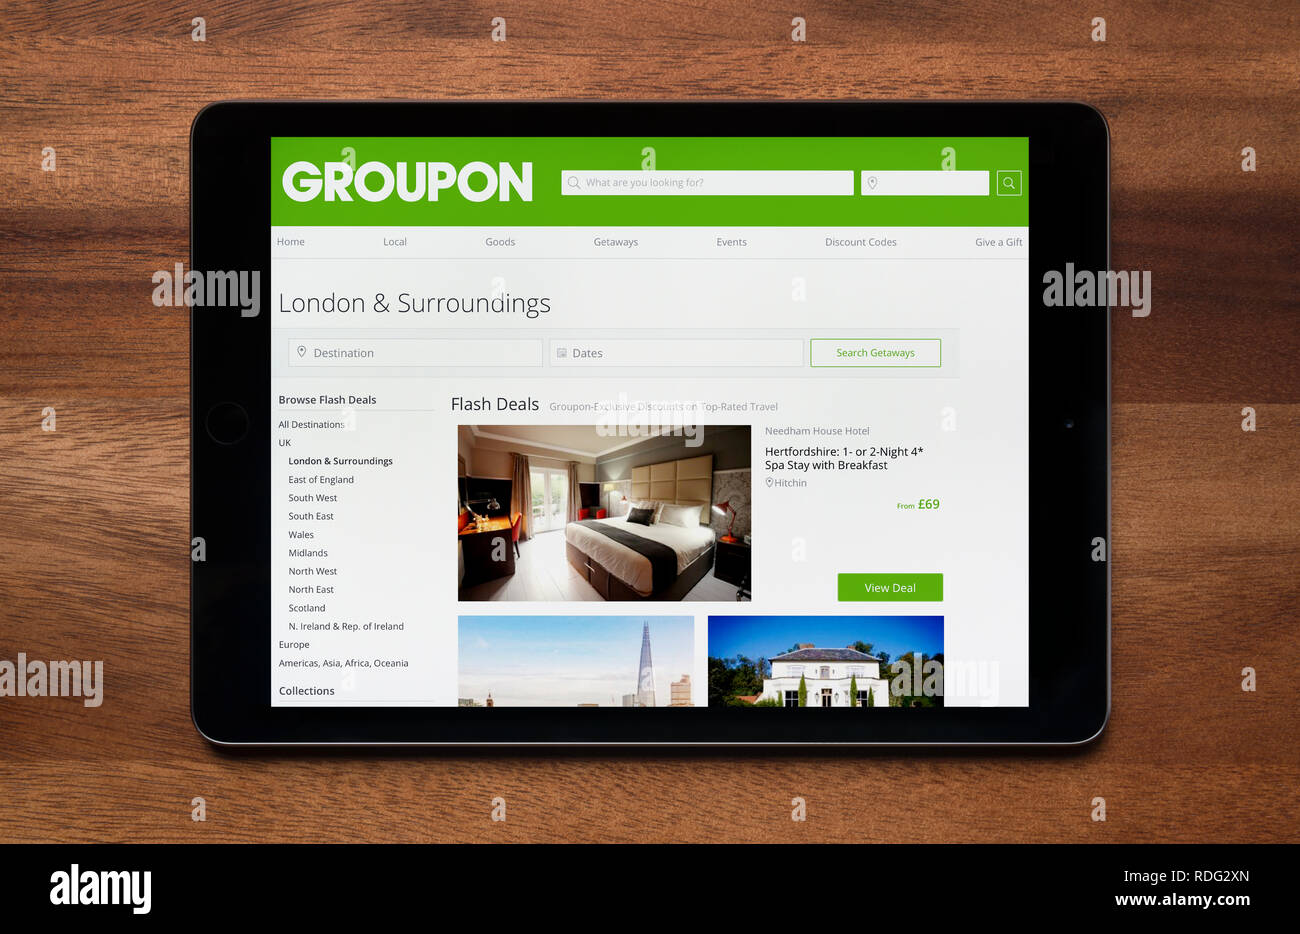 The website of Groupon is seen on an iPad tablet, which is resting on a wooden table (Editorial use only). - Stock Image